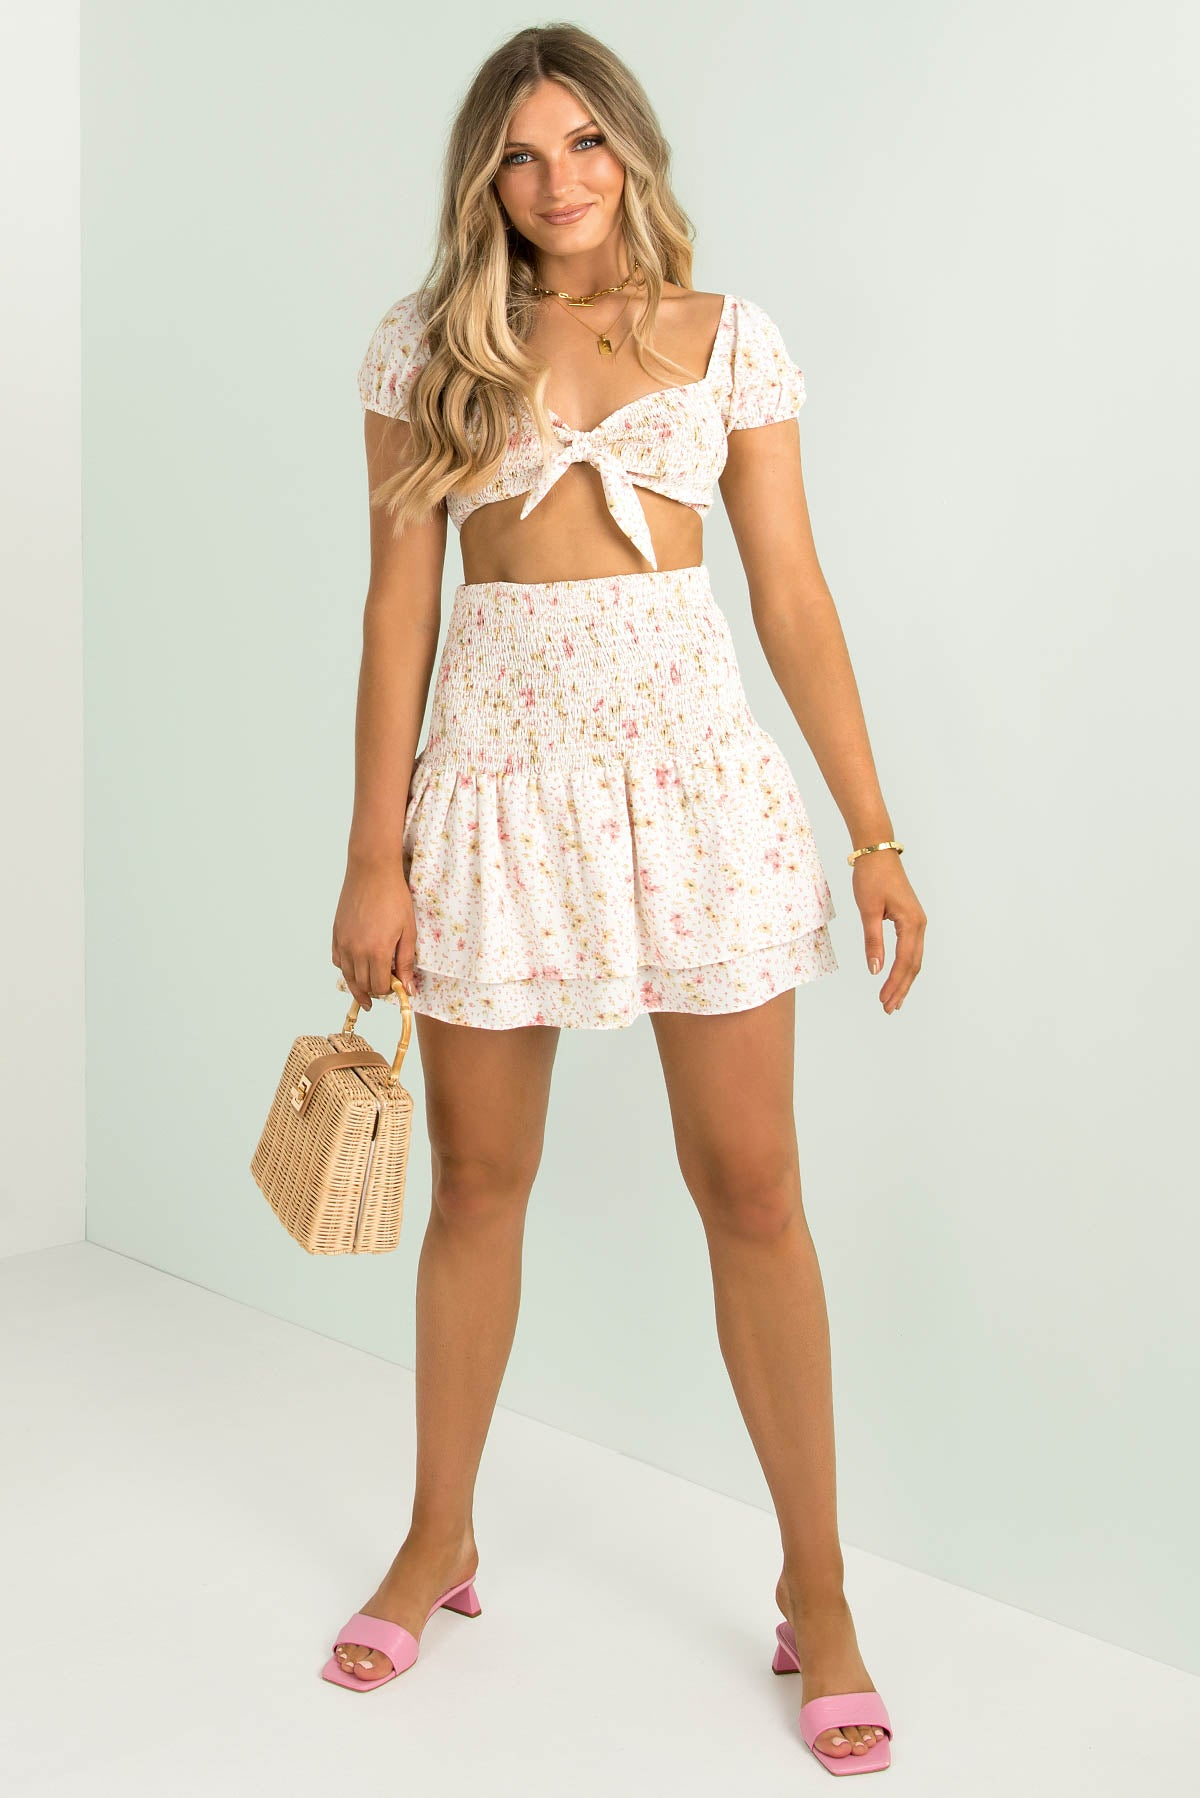 Izzy Top / White Floral